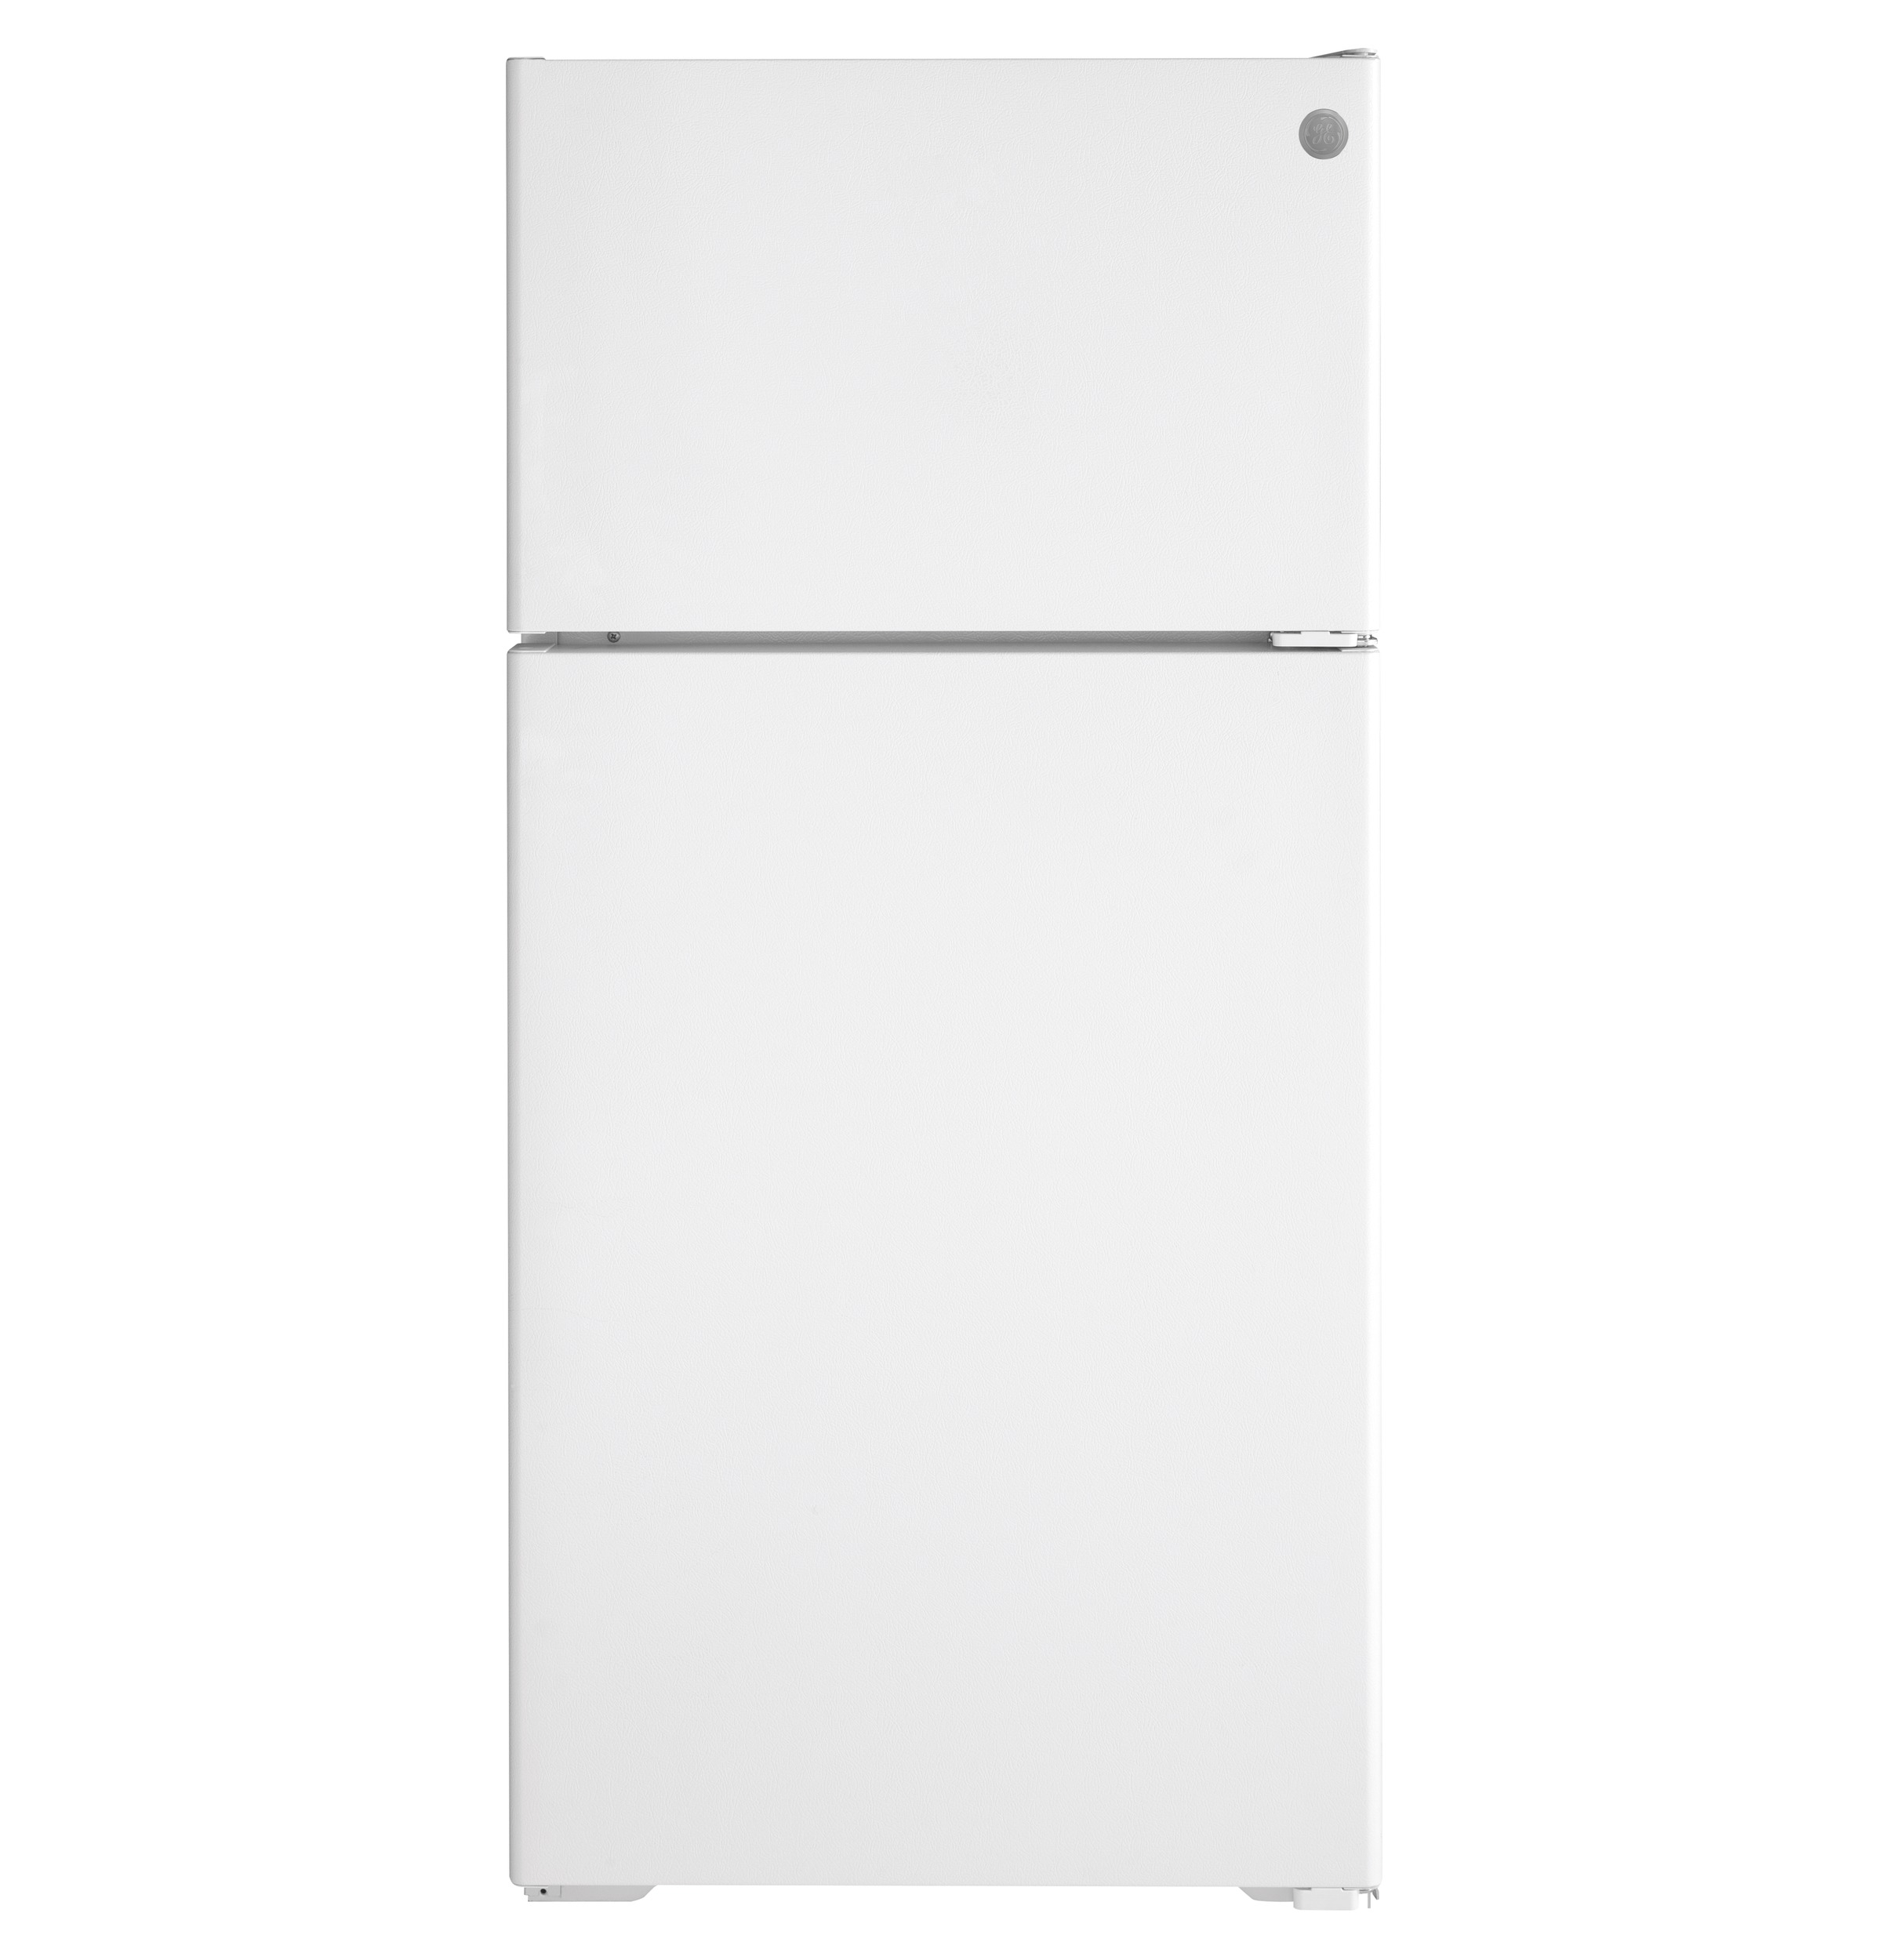 GE GE® ENERGY STAR® 16.6 Cu. Ft. Recessed Handle Top-Freezer Refrigerator